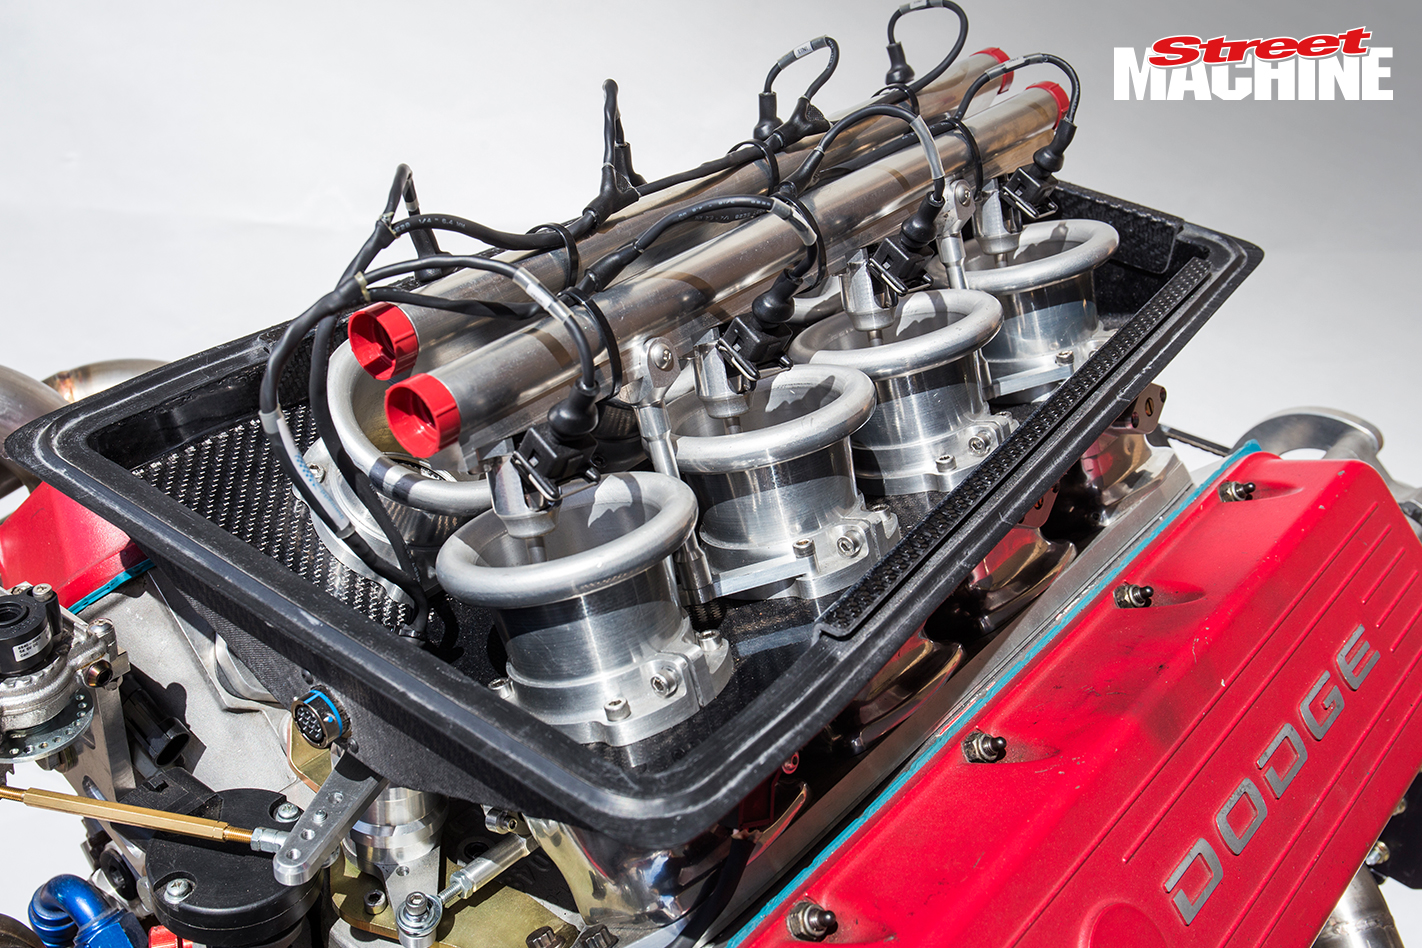 Dodge car tuning part 3 -  We Don T Build Cars For Customers But We Tune For About 18 Different Workshops Catherine S Car Used To Run A Twin Turbo Ls1 That Was Punching Out